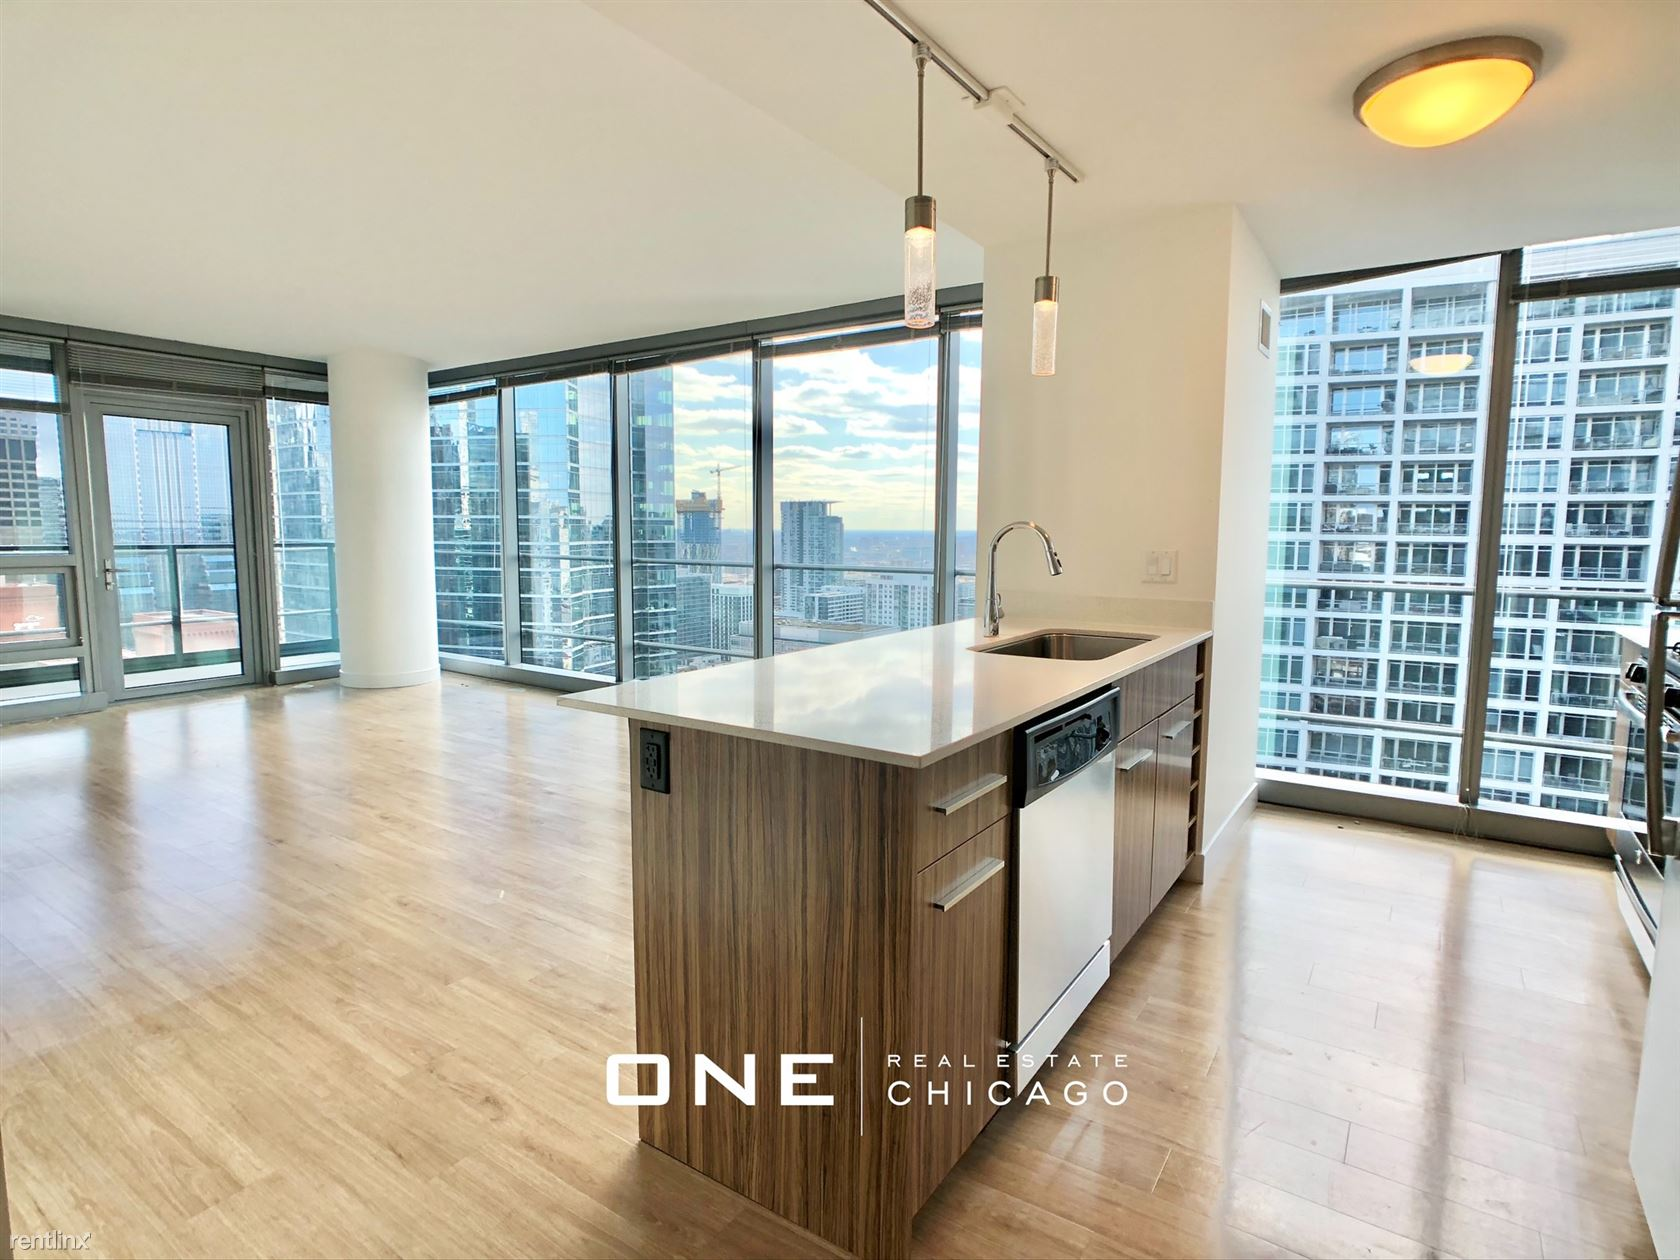 Wolf Point Plz and Orleans, Chicago, IL - $2,975